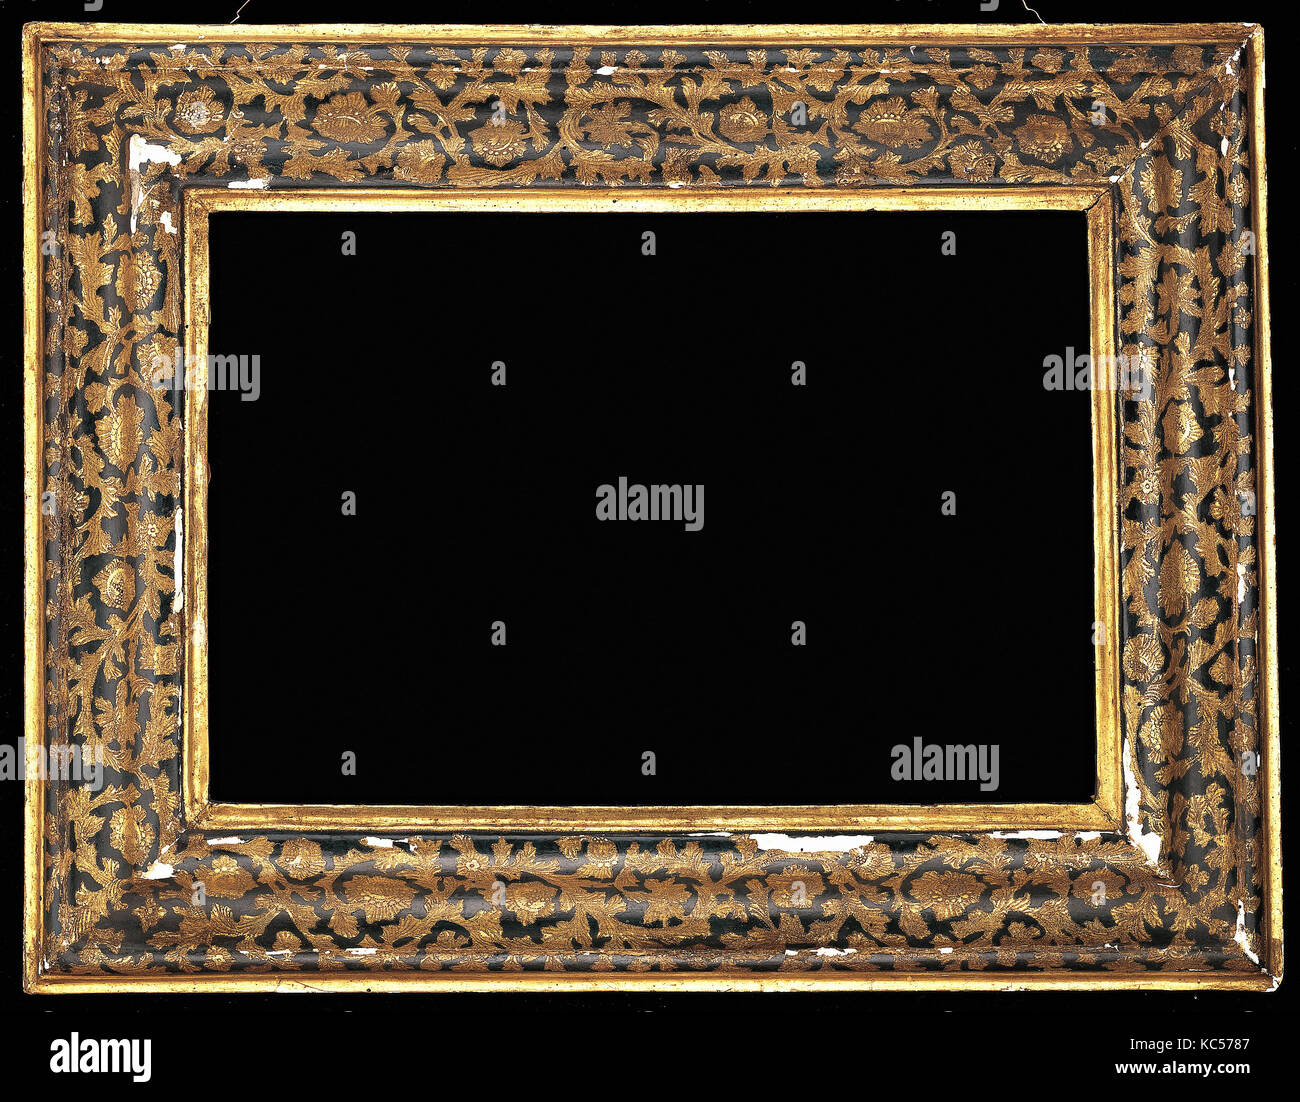 Reverse ogee molding mid 17th century italian venice poplar reverse ogee molding mid 17th century italian venice poplar overall 19 x 25 frames jeuxipadfo Image collections